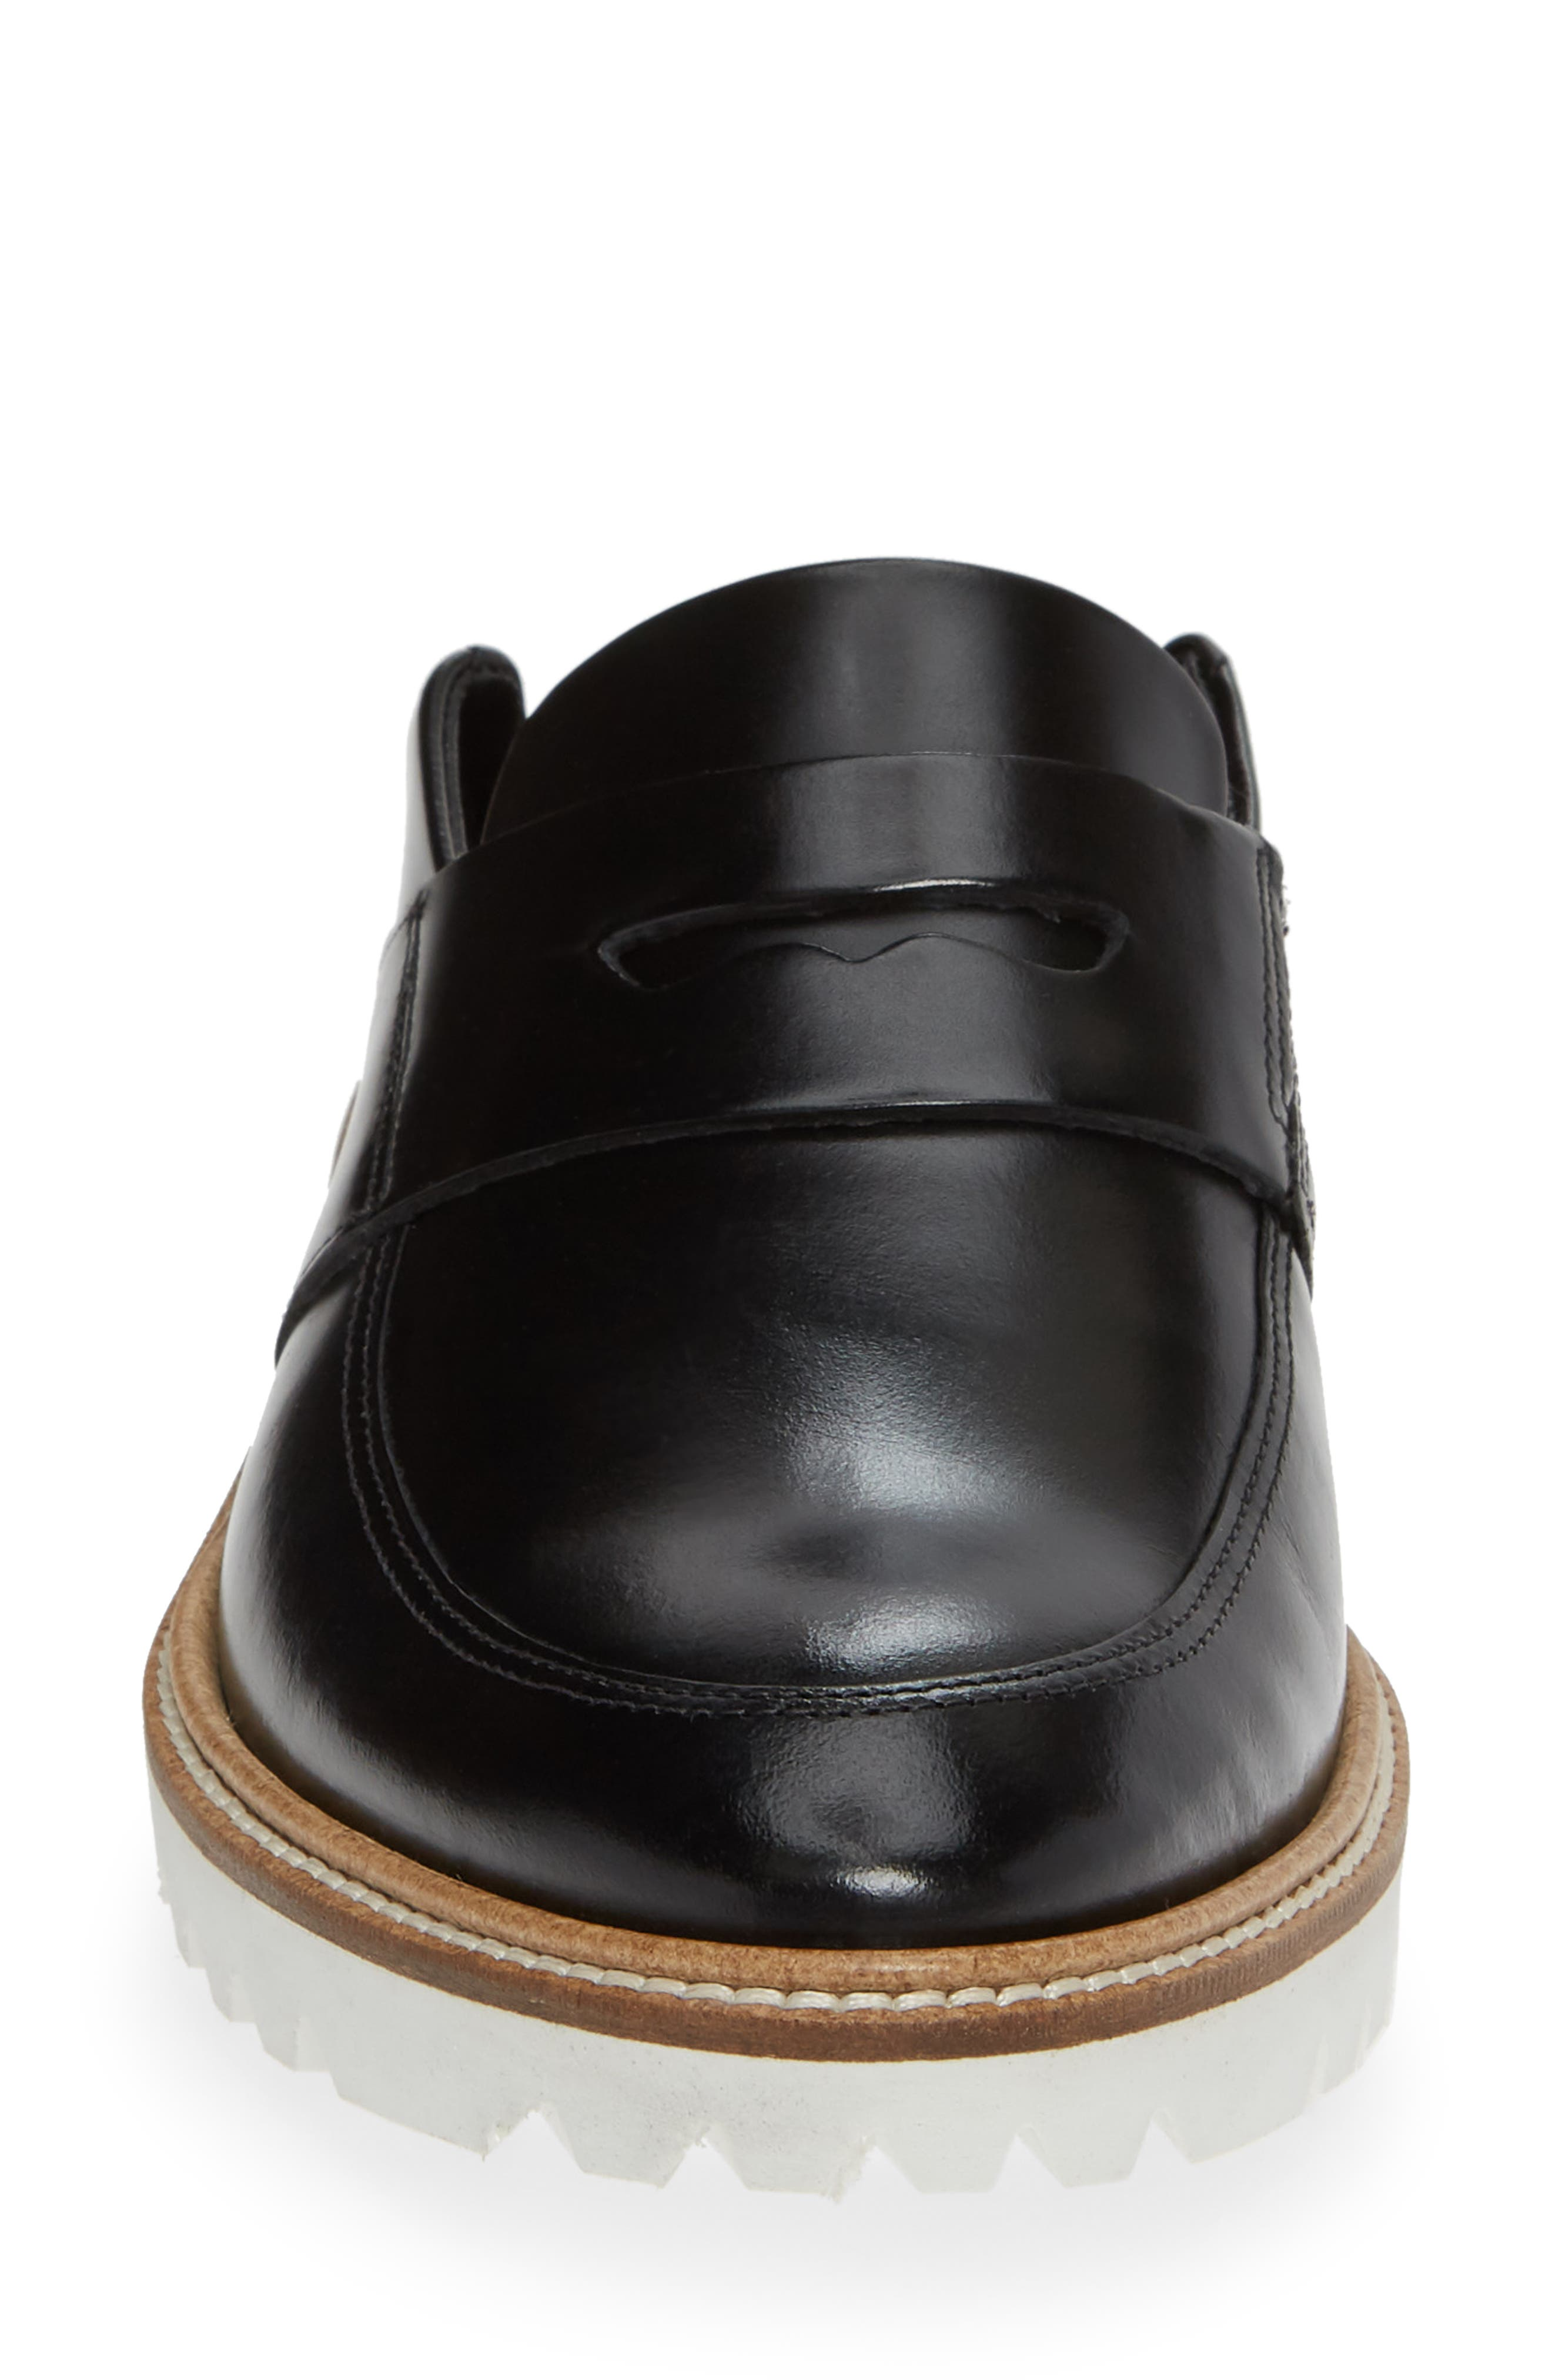 Incise Tailored Convertible Loafer,                             Alternate thumbnail 5, color,                             BLACK LEATHER